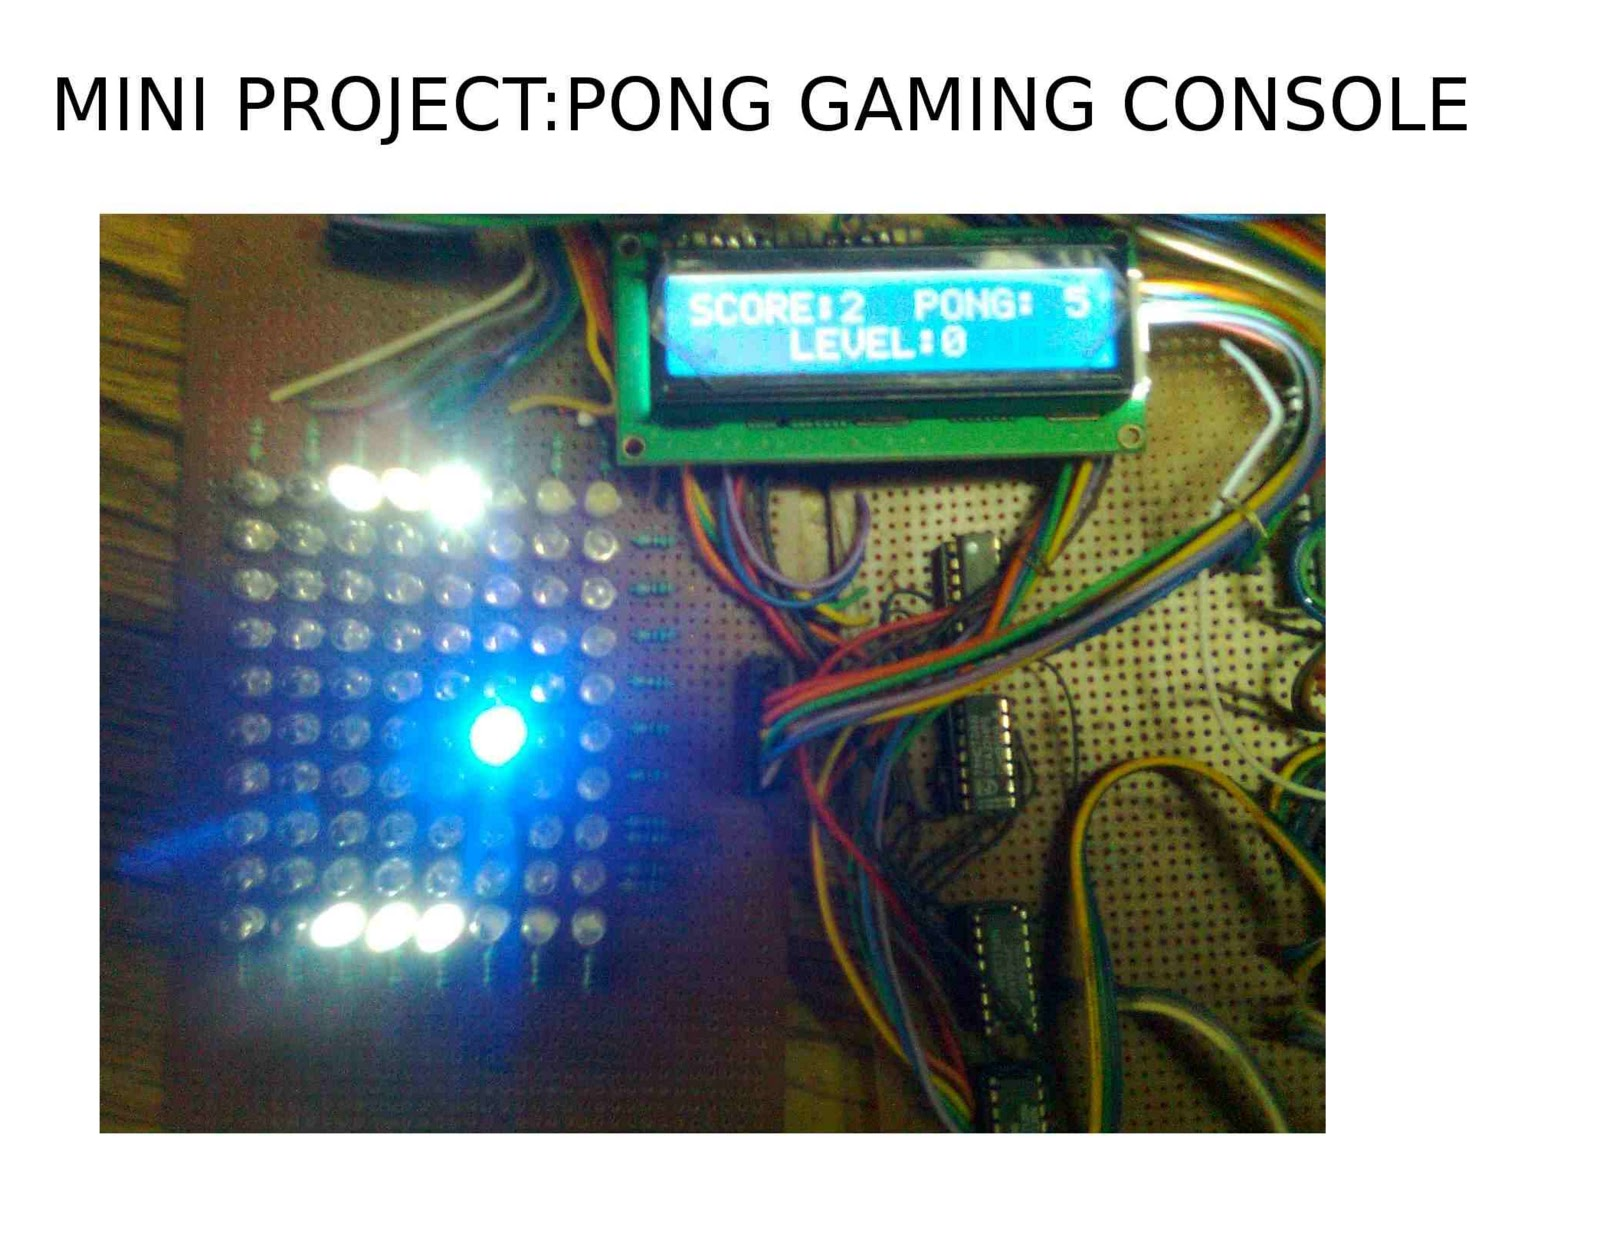 Technolabsz Pong Gaming Console My Mini Project Goes Opensource Electronics Projects Circuit Image